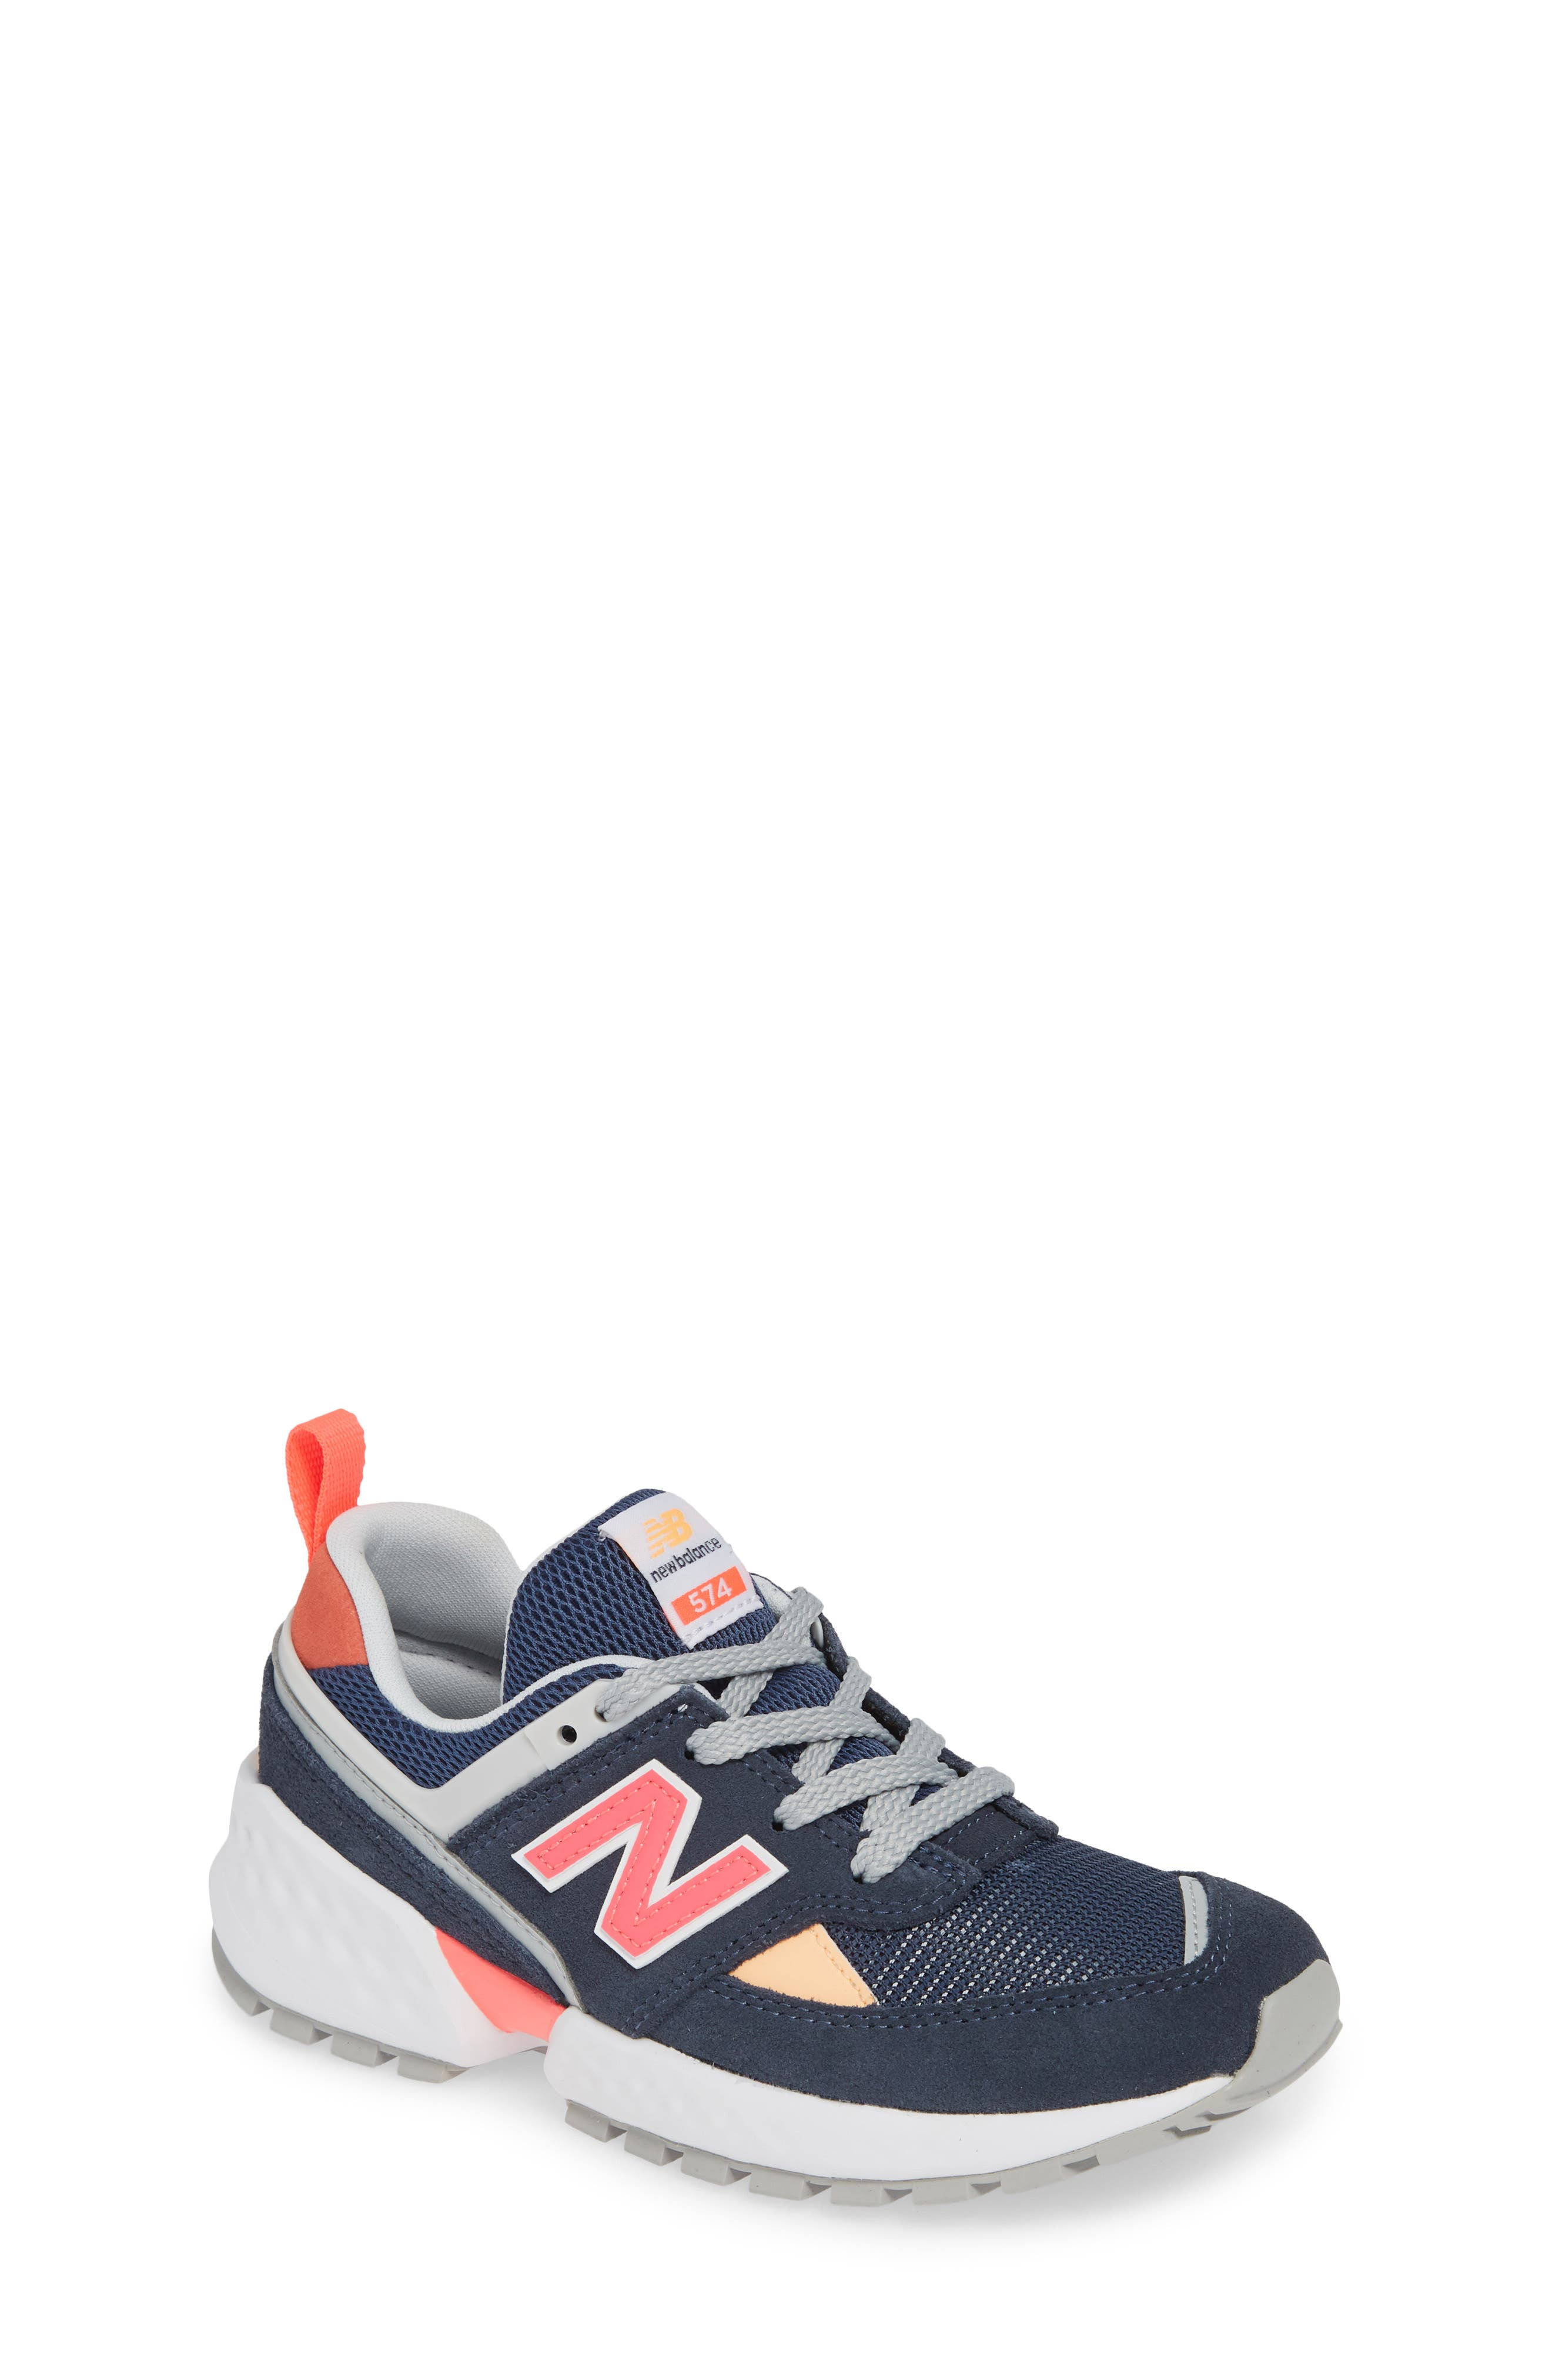 Boys' Shoes Clothing, Shoes & Accessories Hi Lite Big Kid 6 Extra Wide New Balance Youth Running Shoe Velcro Magnet